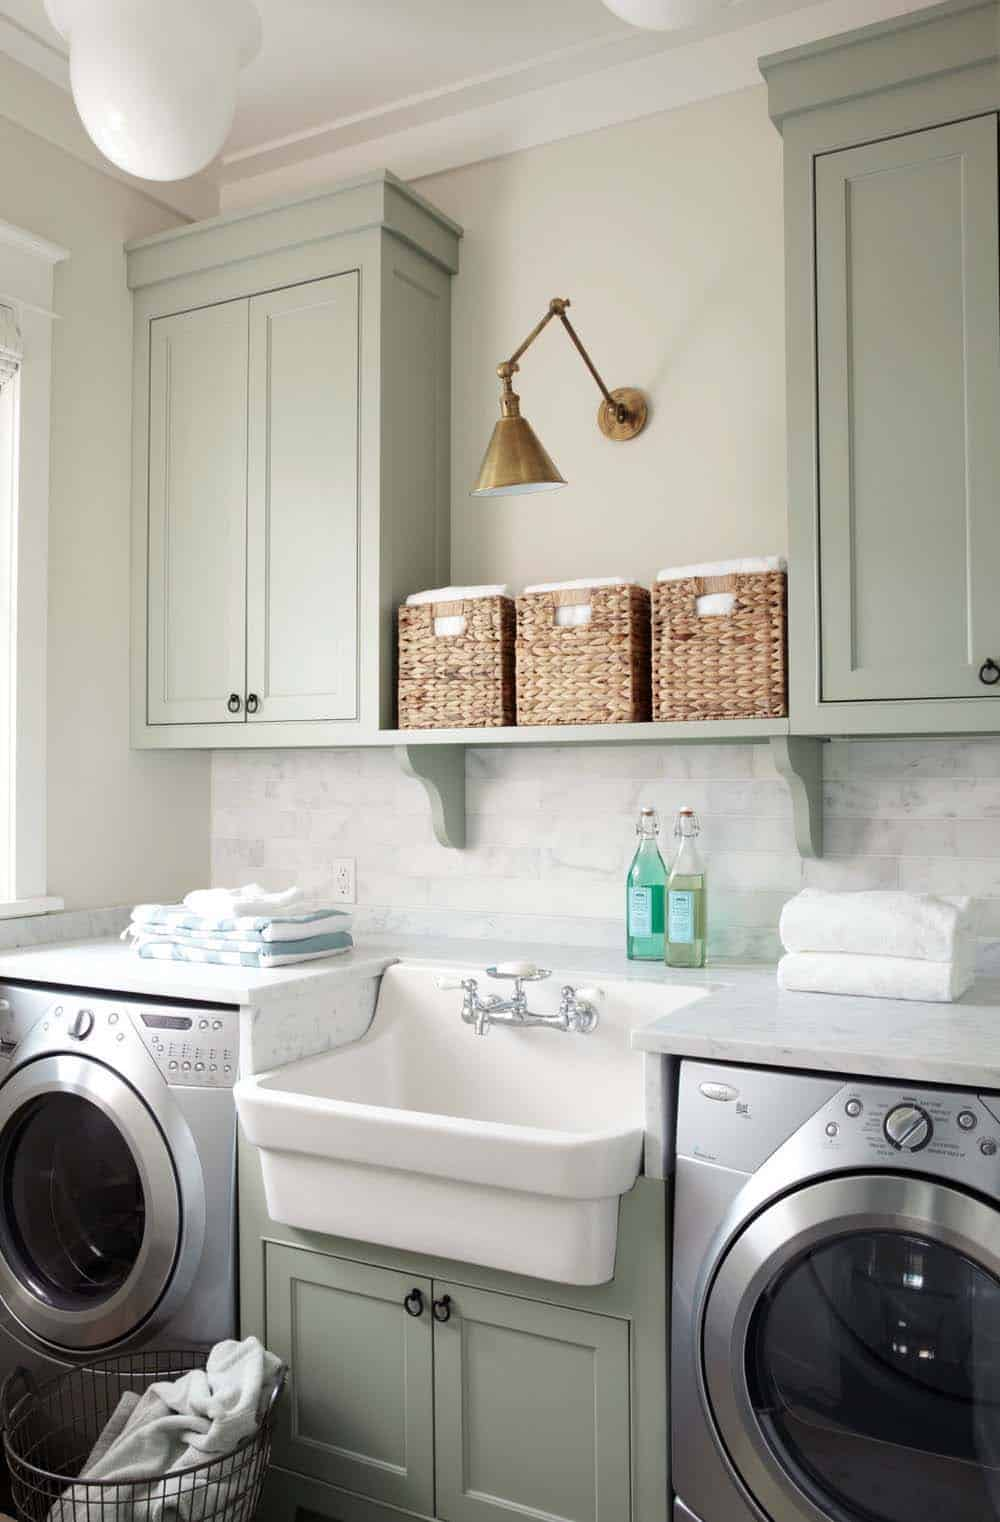 Functional-Stylish Small Laundry Rooms-26-1 Kindesign